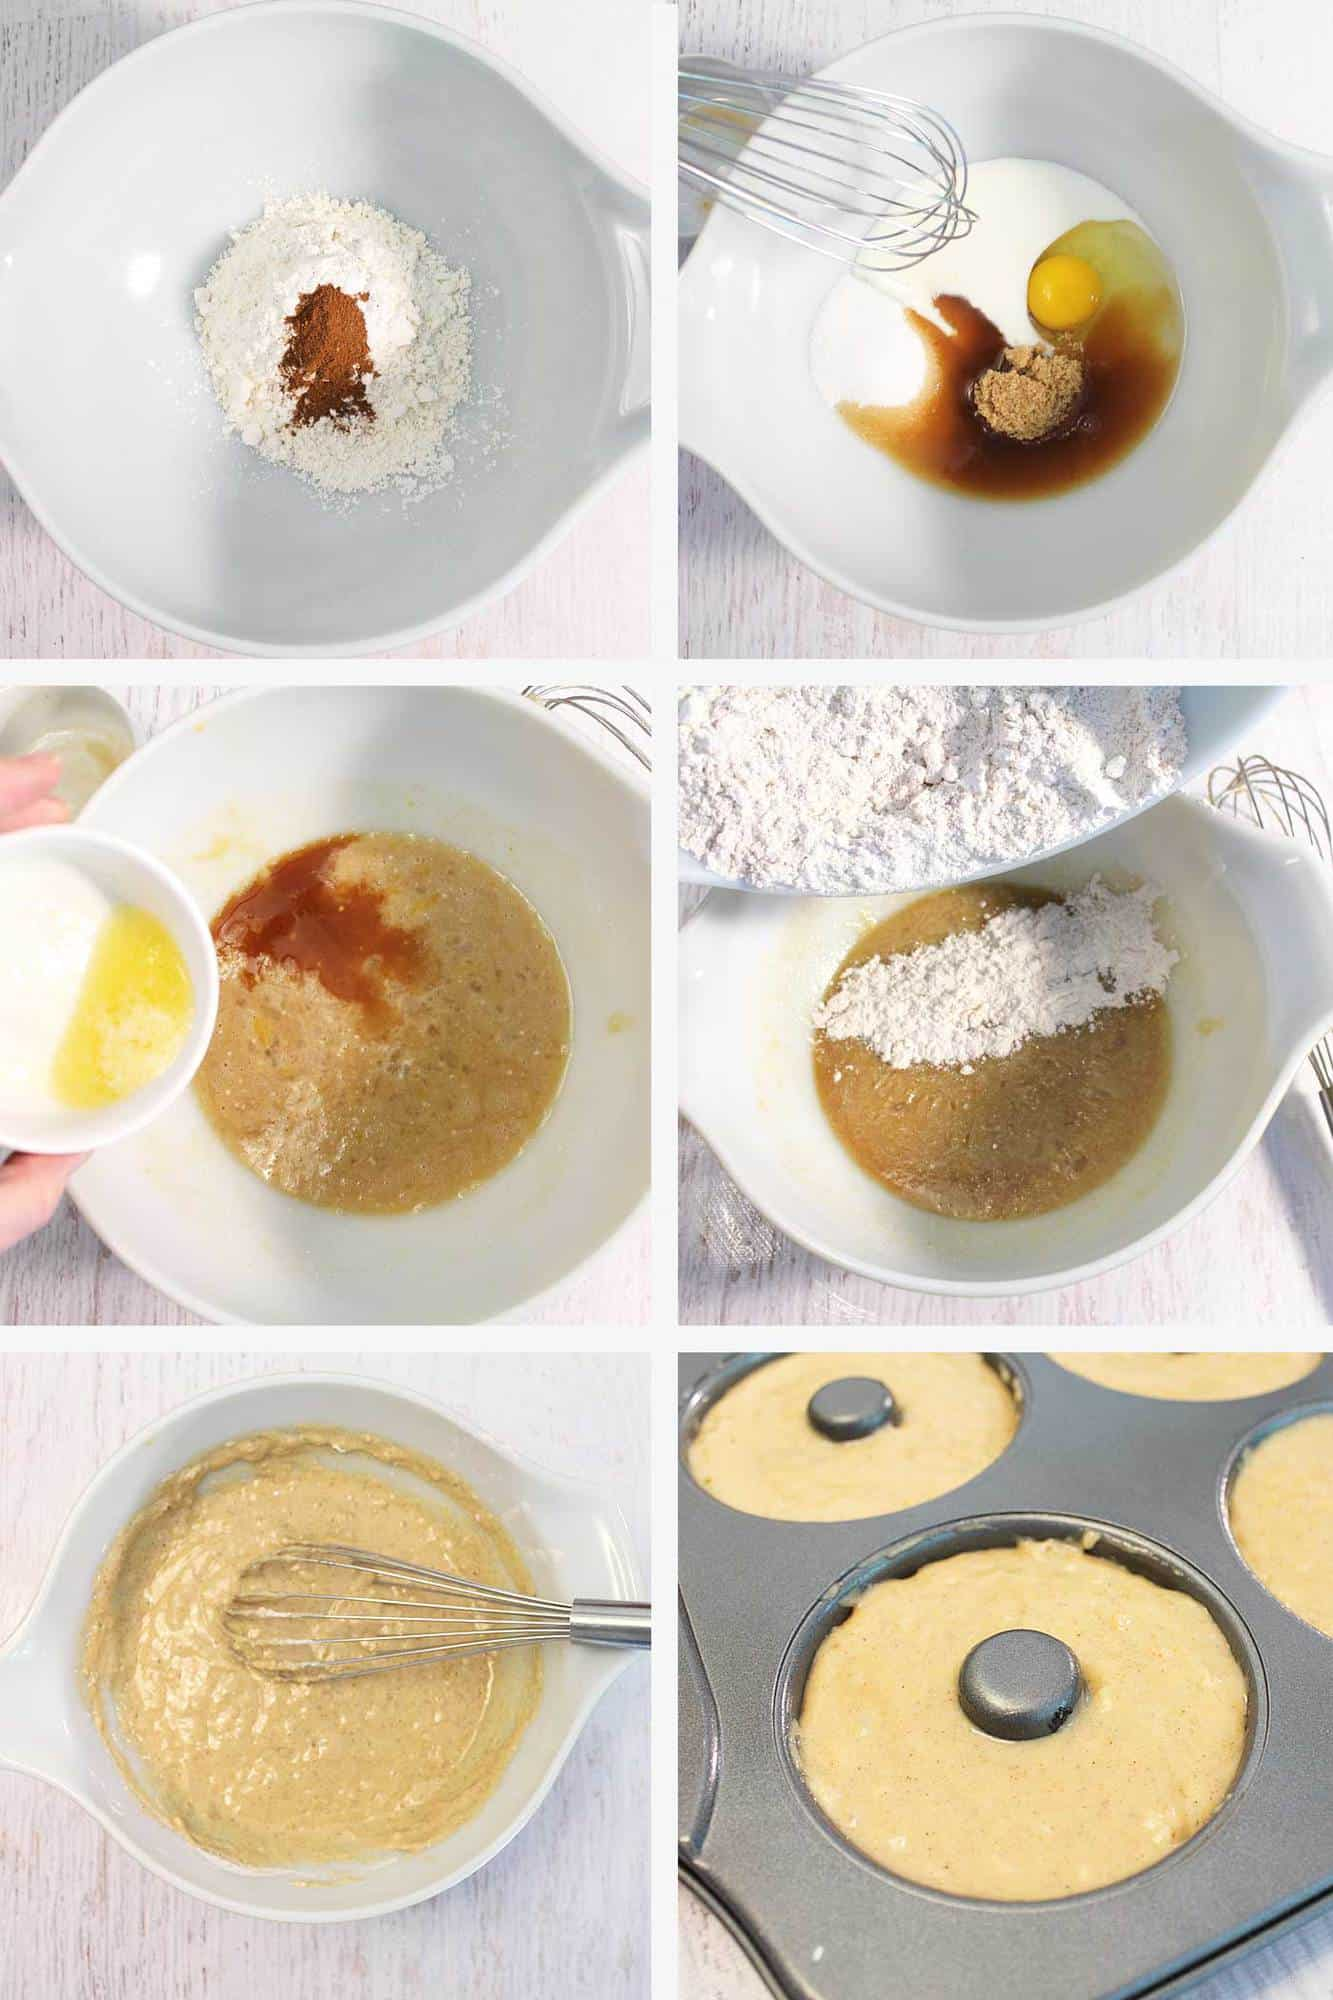 Apple Cider Doughnuts Steps 1-6